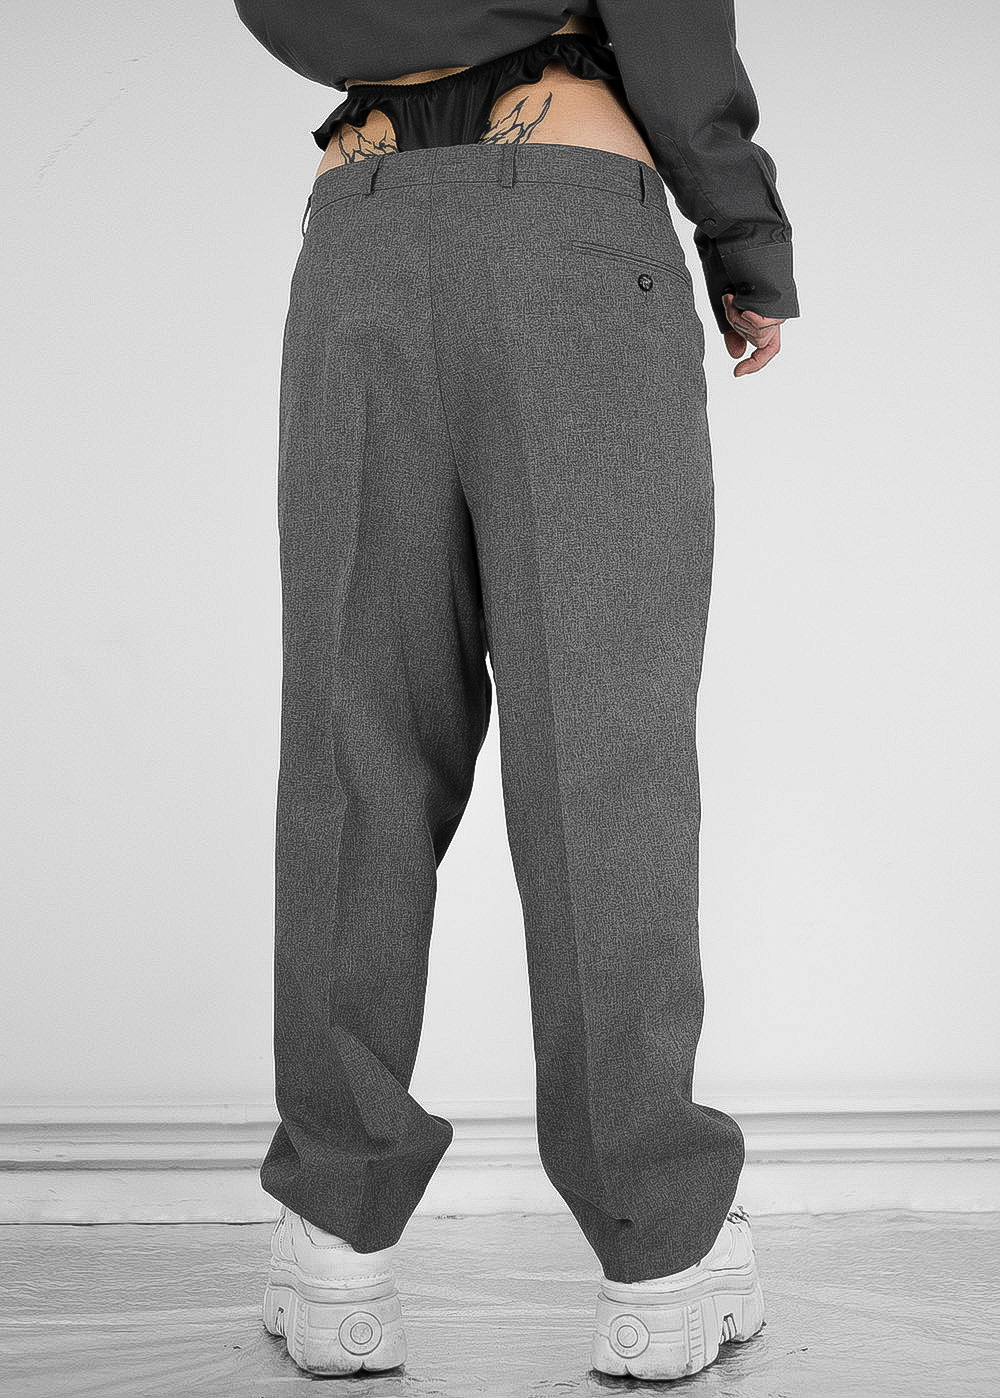 Heather Grey Pants 15